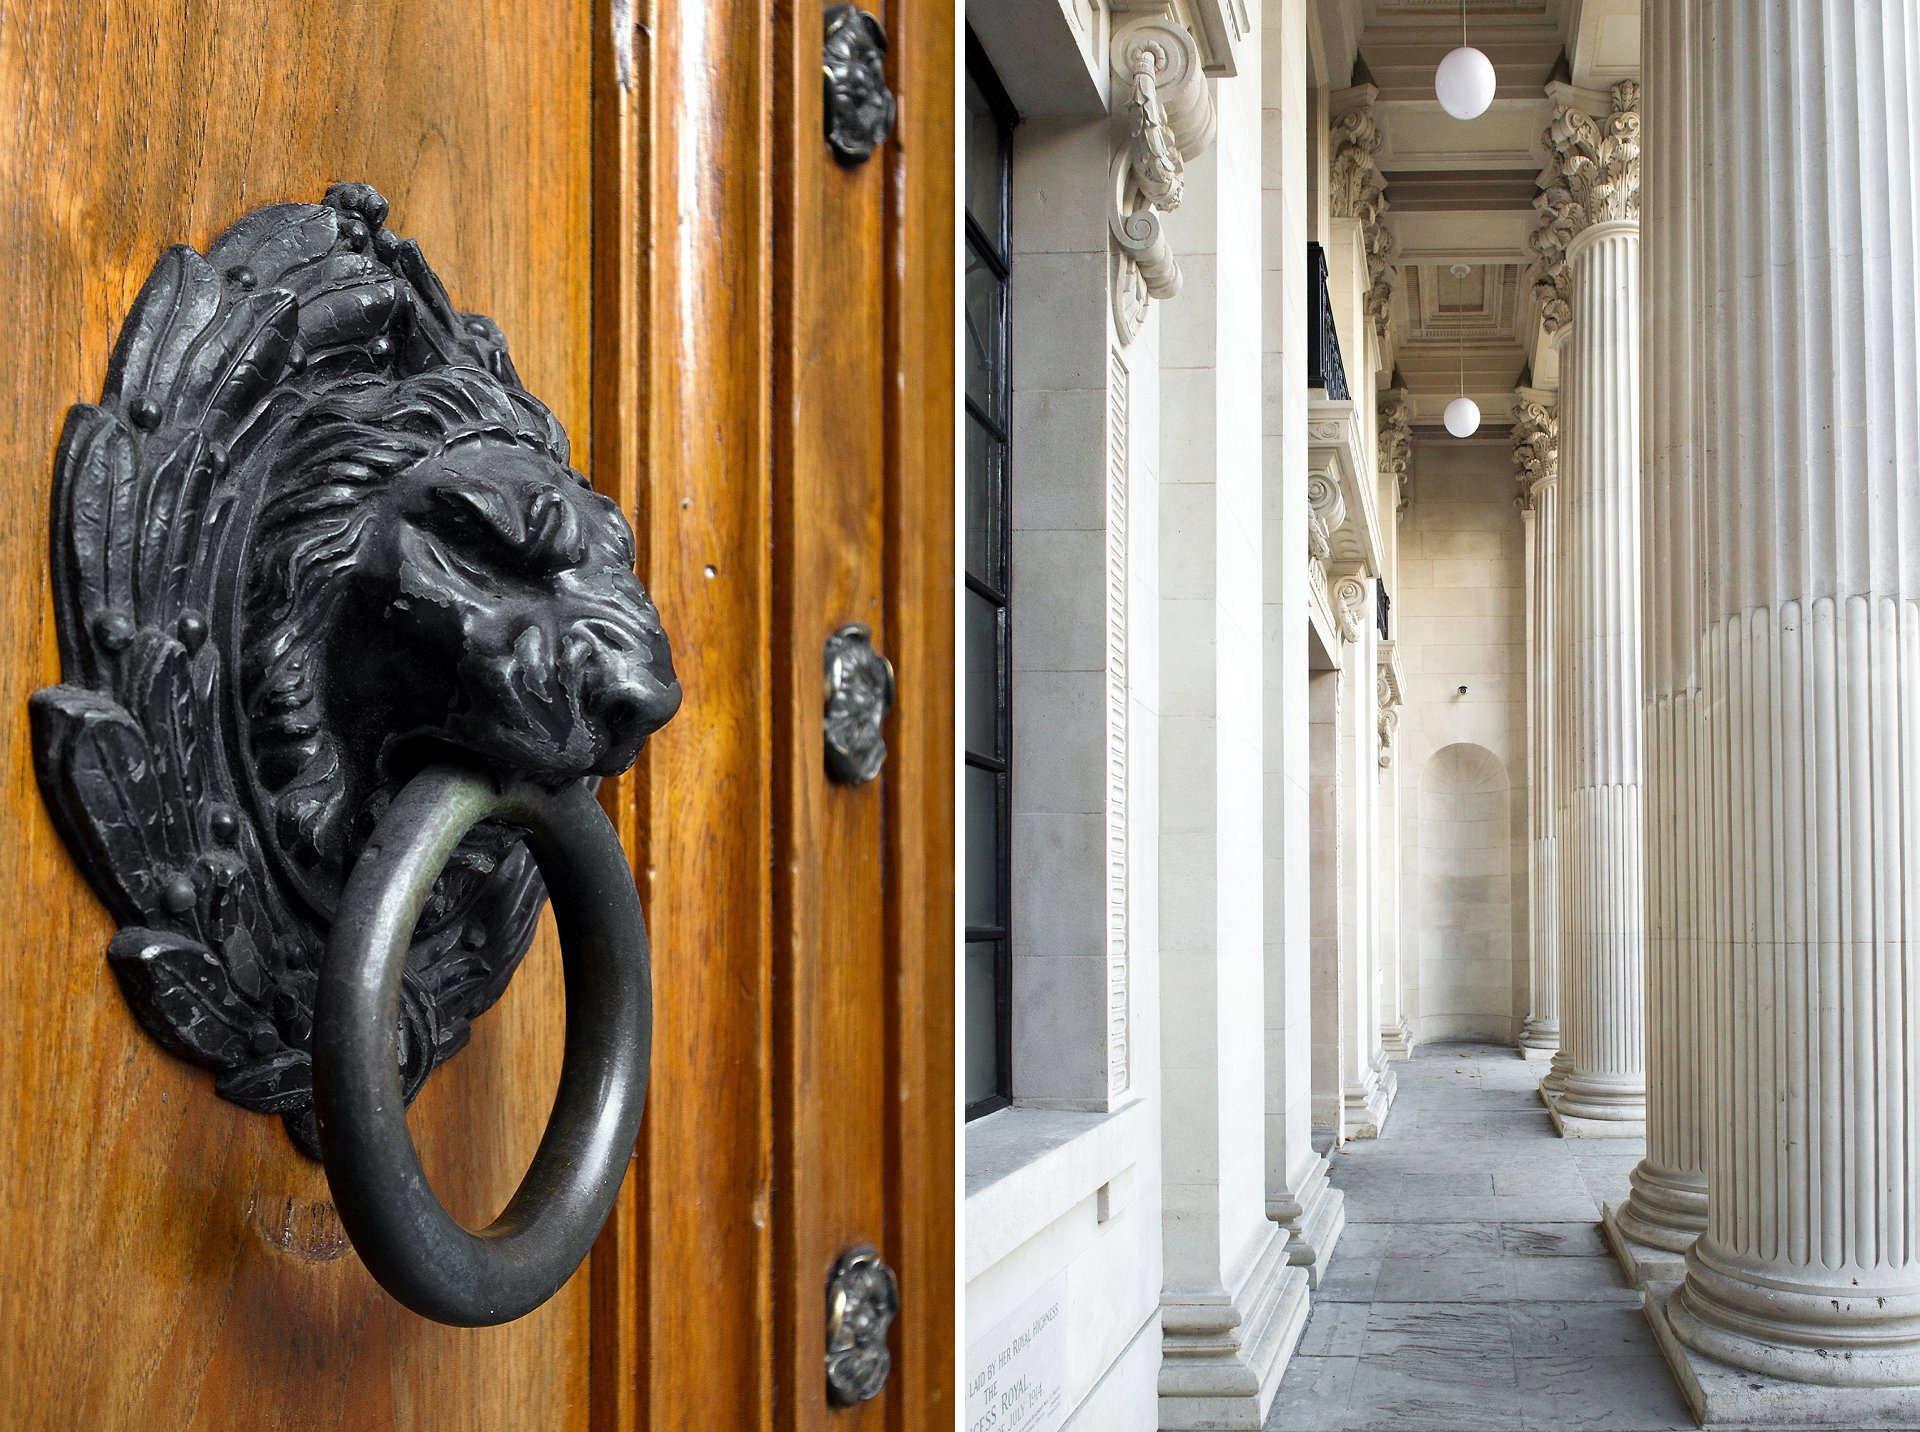 Lion door knocker and fluted stone columns outside Old Marylebone Town Hall after extensive refurbishments with cleaned exterior stonework